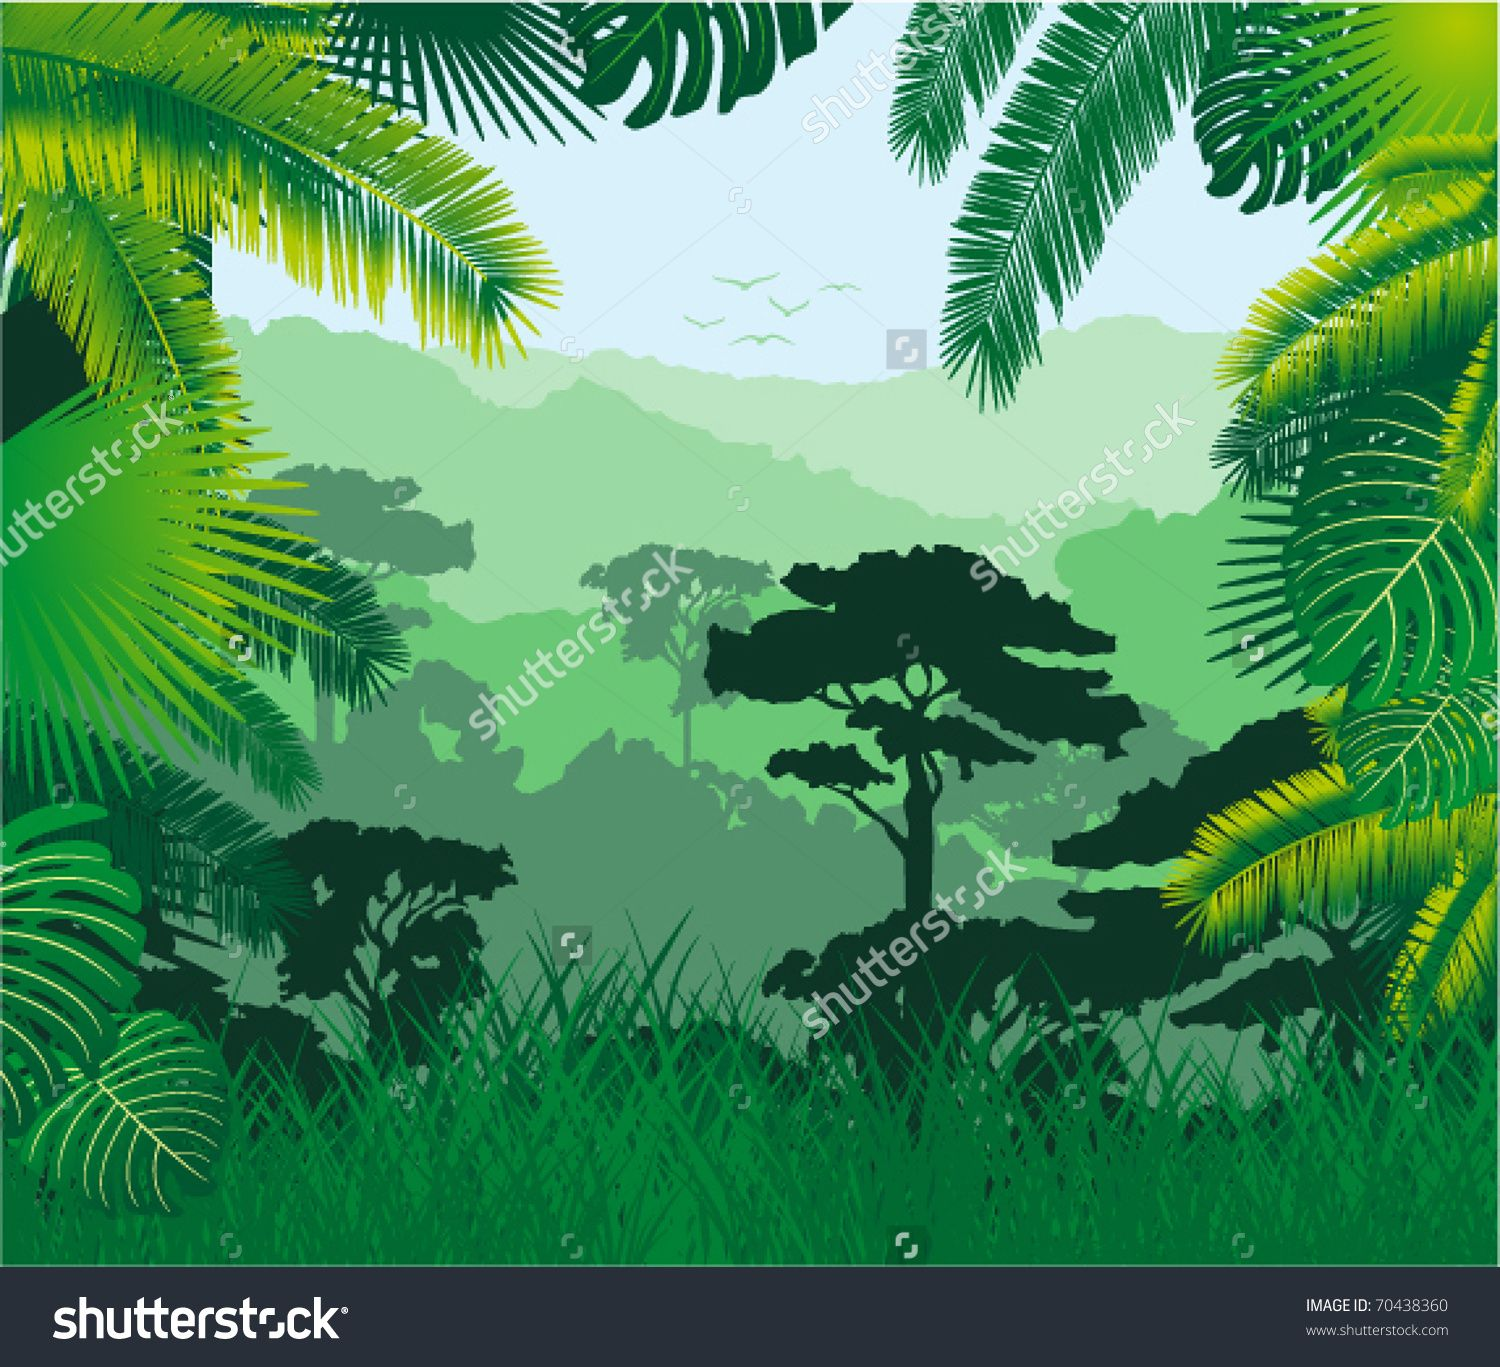 Jungle Background Stock Photos, Images, & Pictures